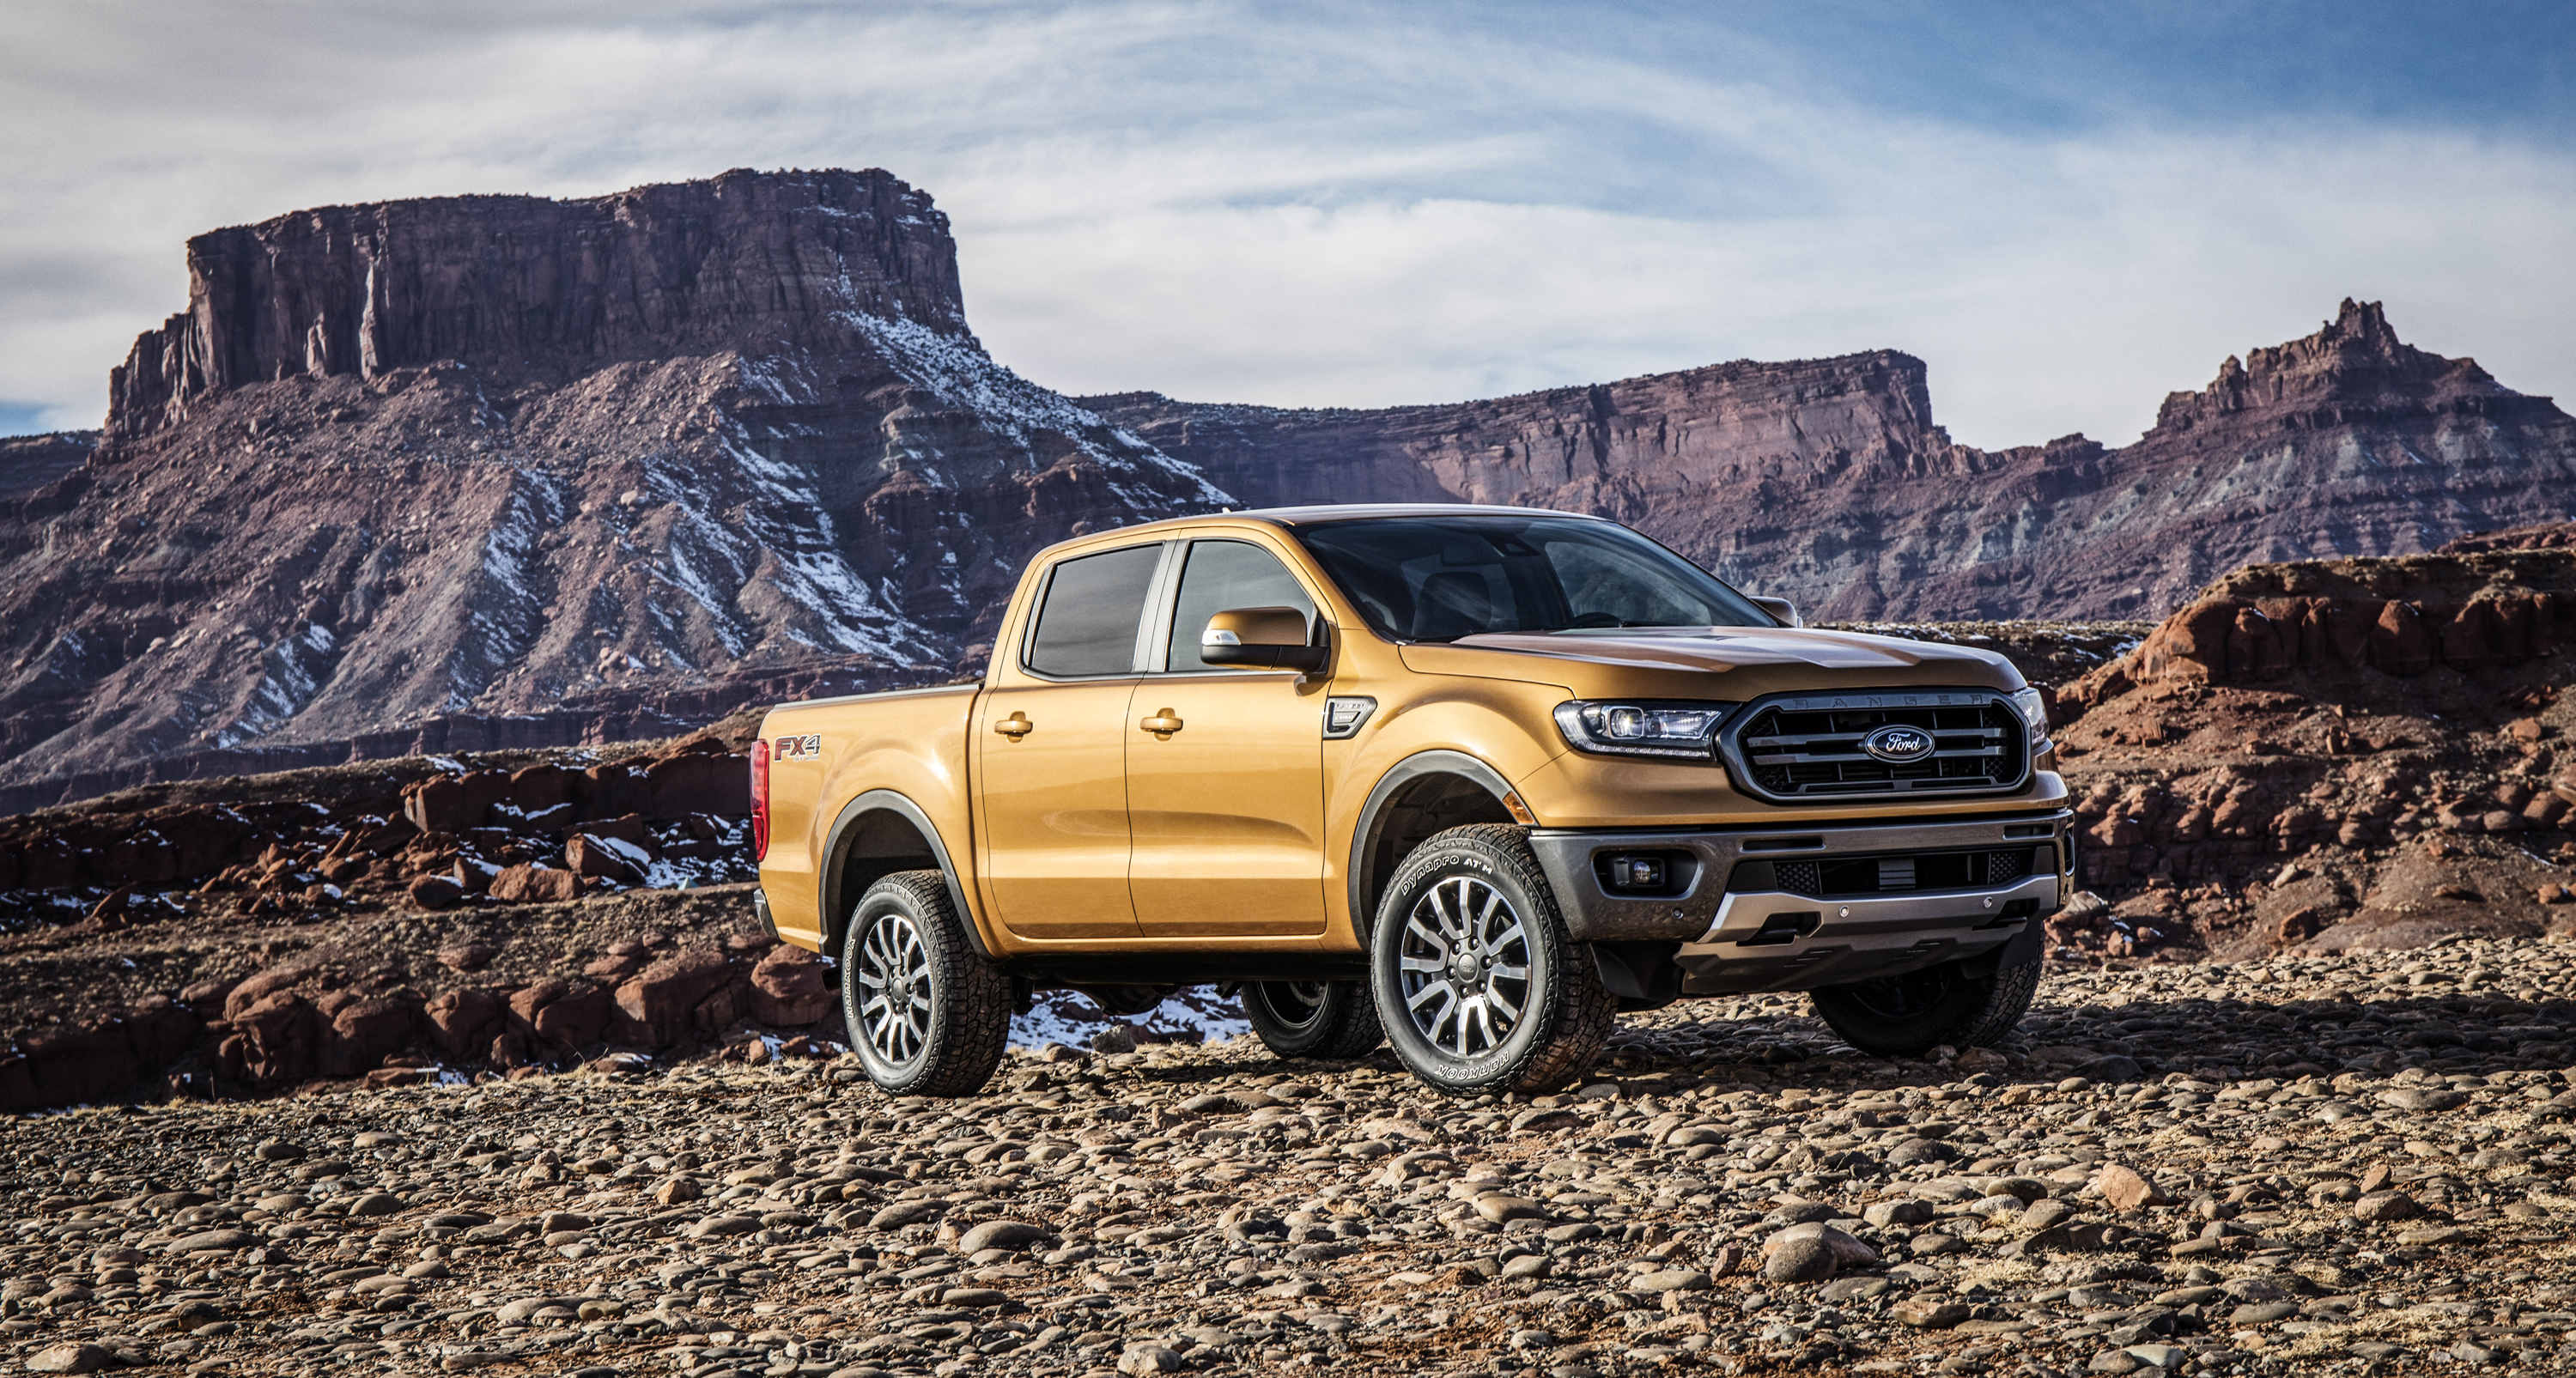 This Is It Meet The 2019 Ford Ranger Raptor Top Speed Time Circuit Board I Call A Version 2 Although Marked